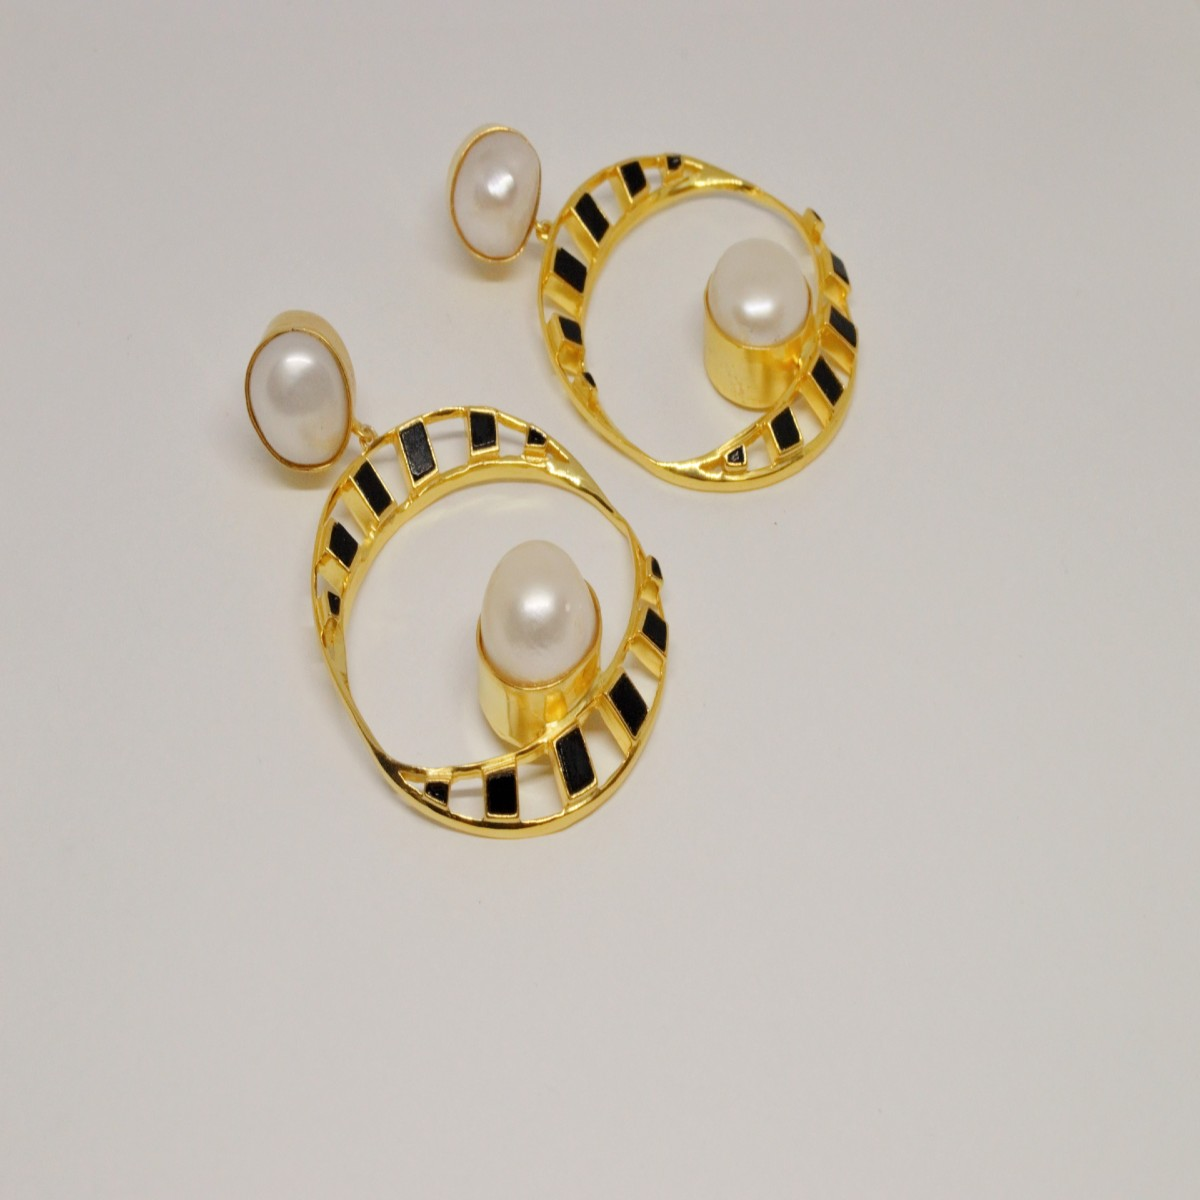 earrings pearls and black onyx (1 gold, 1 silver)earrings pearls and black onyx